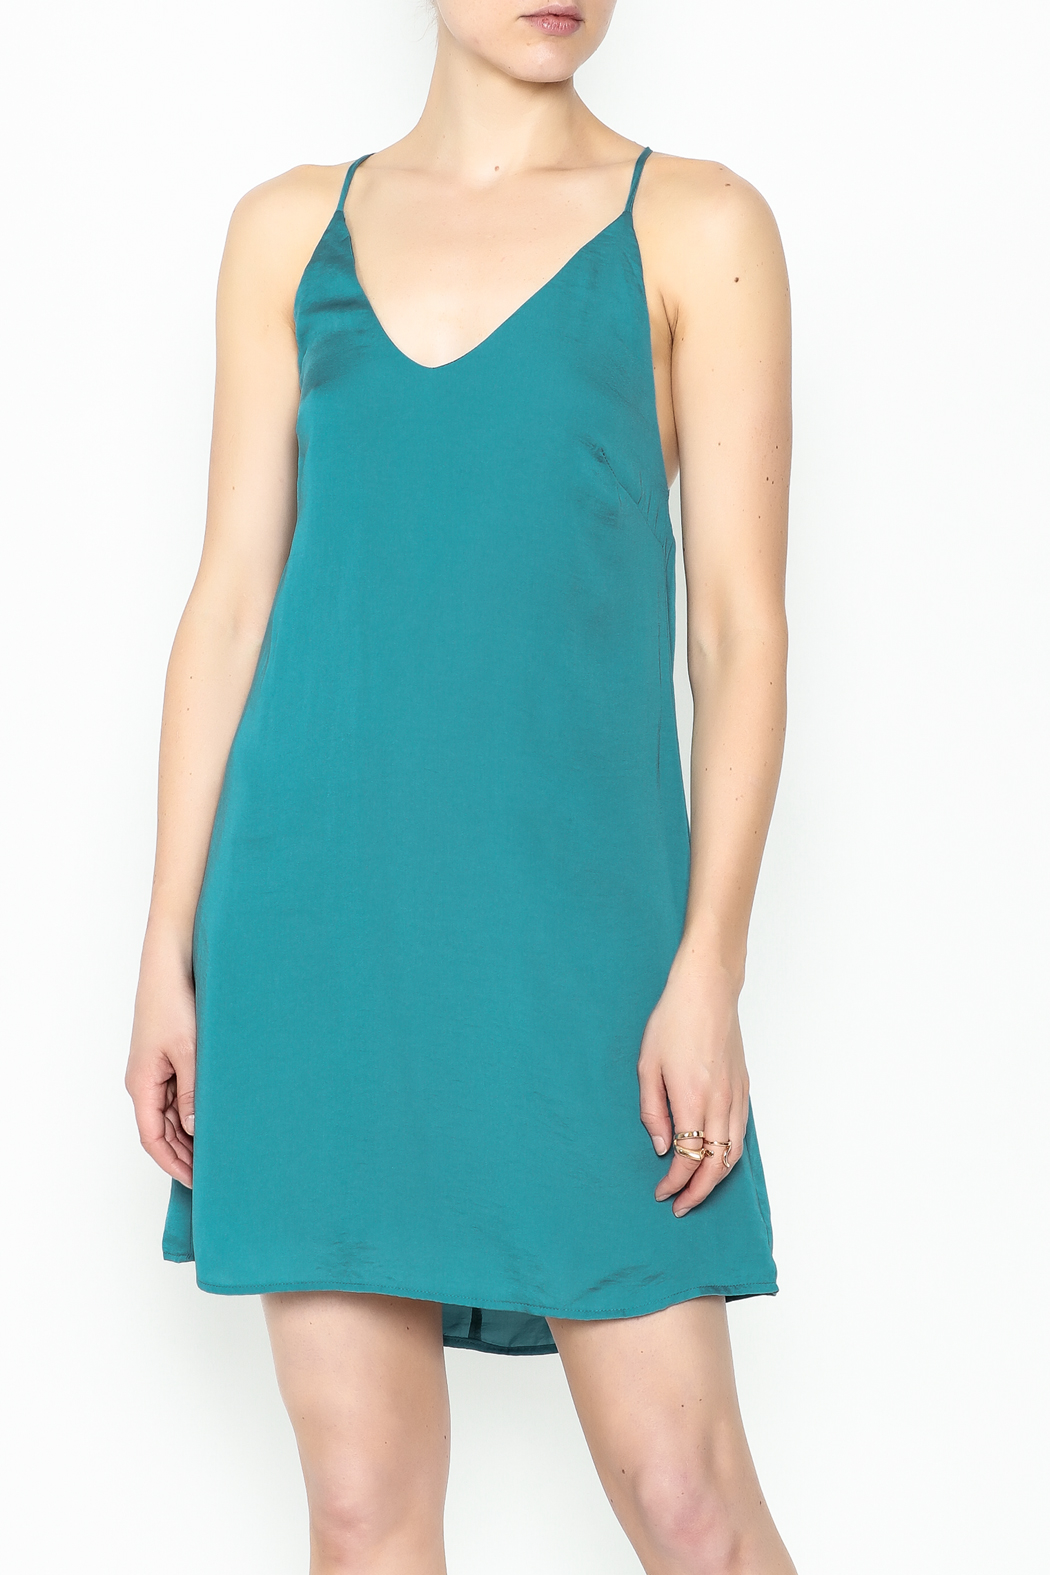 AAKAA Teal Satin Dress - Front Cropped Image